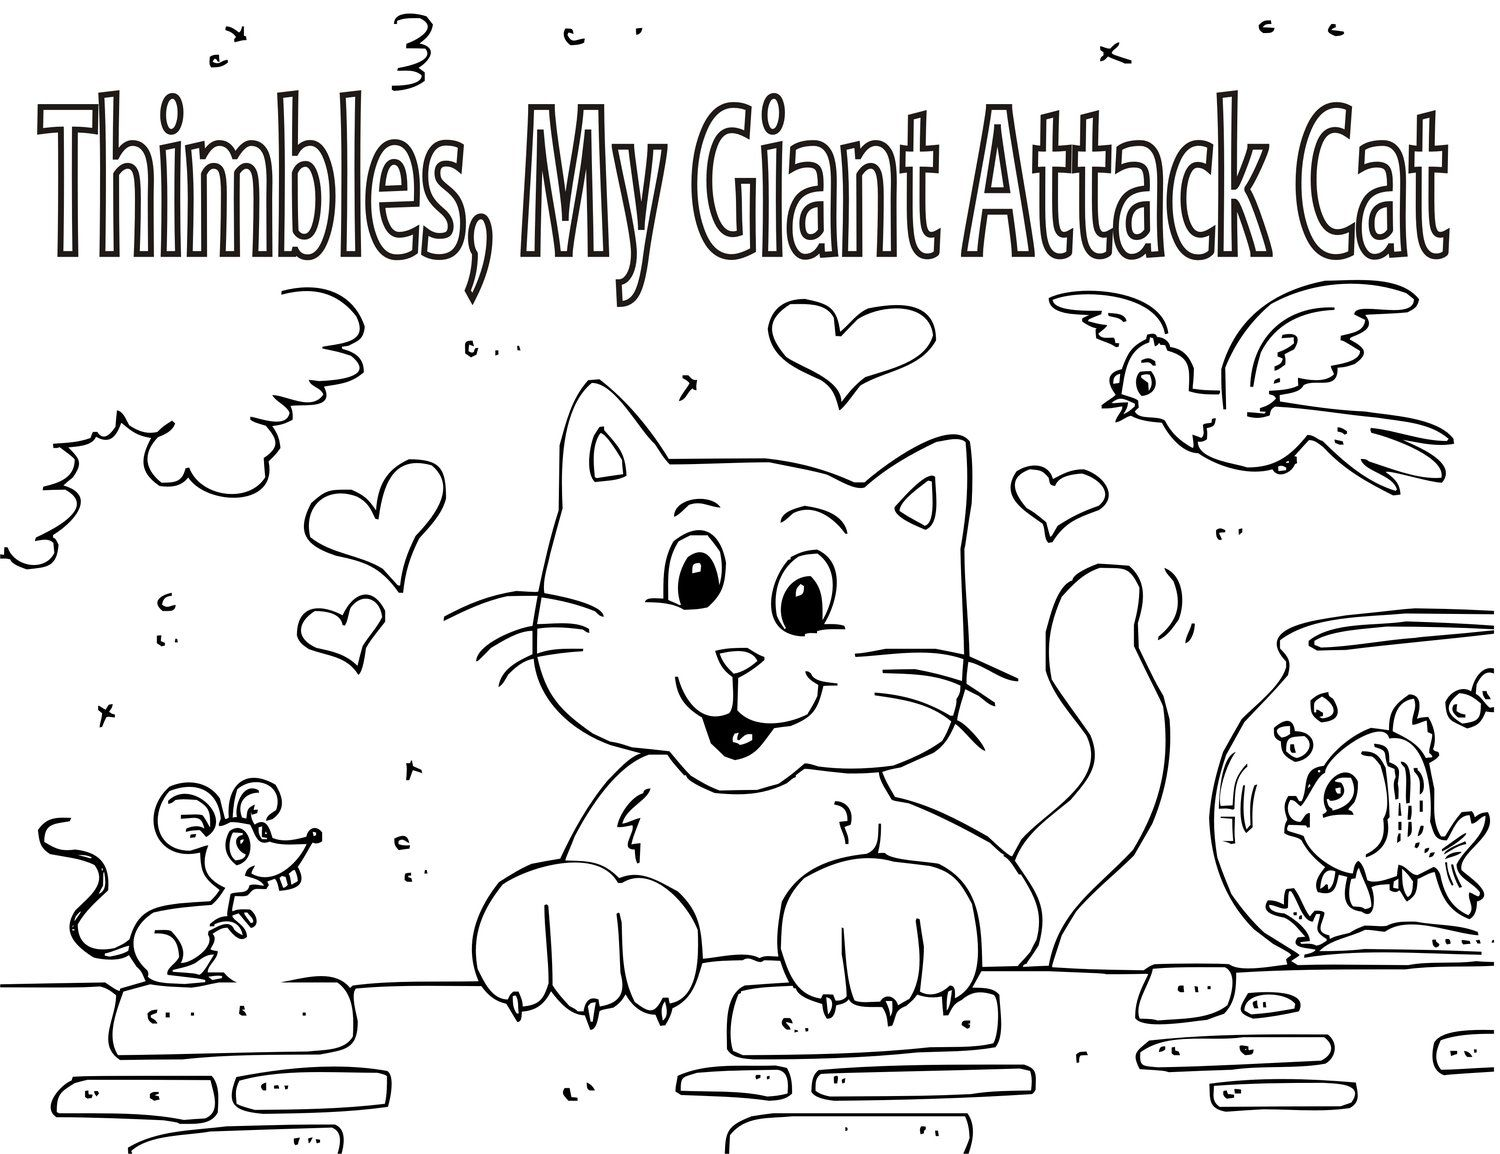 Coloring Book For Kids Storybook Thimbles The Giant Attack Cat Kids Story Books Coloring Books Storybook